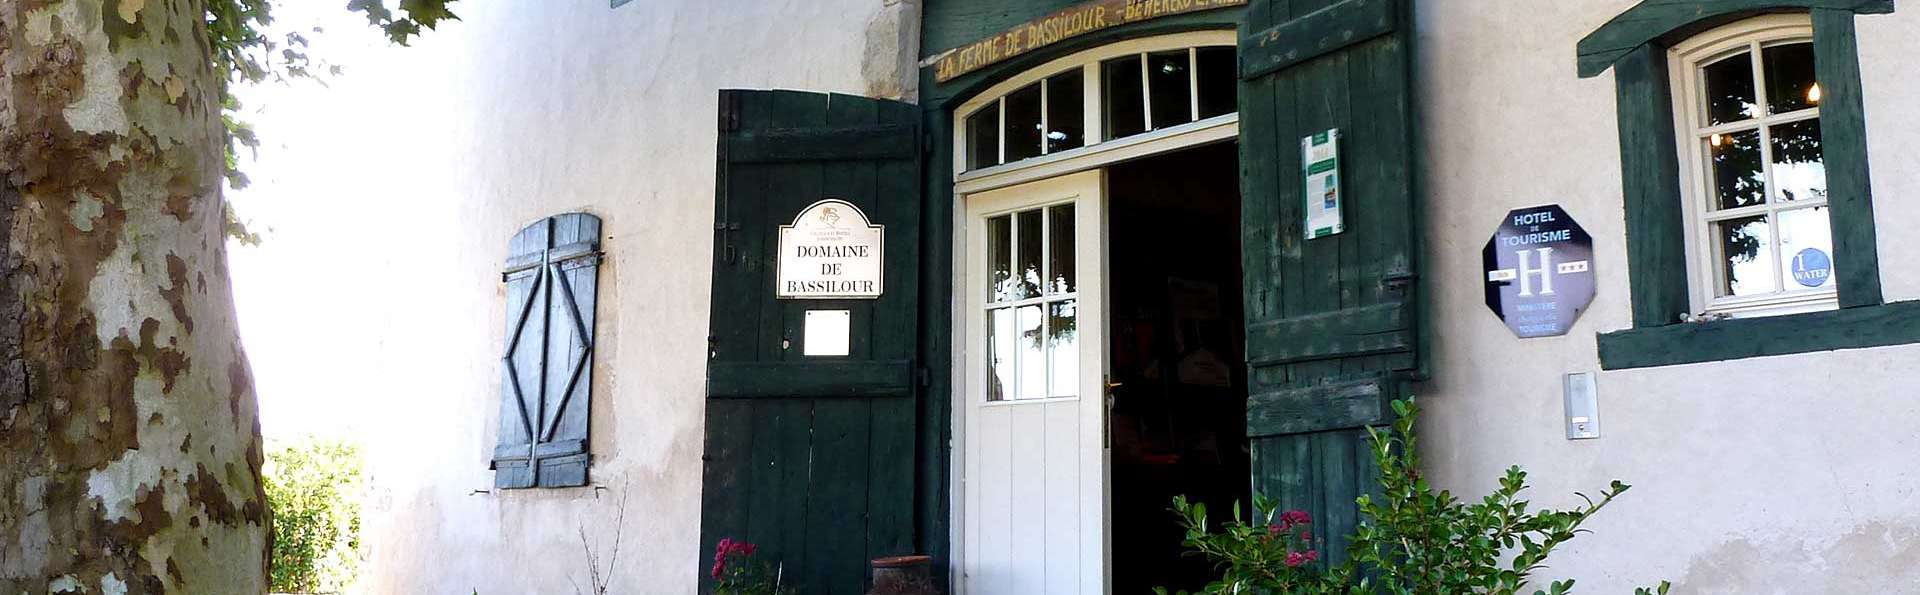 Domaine de Bassilour - Edit_Entrance.jpg